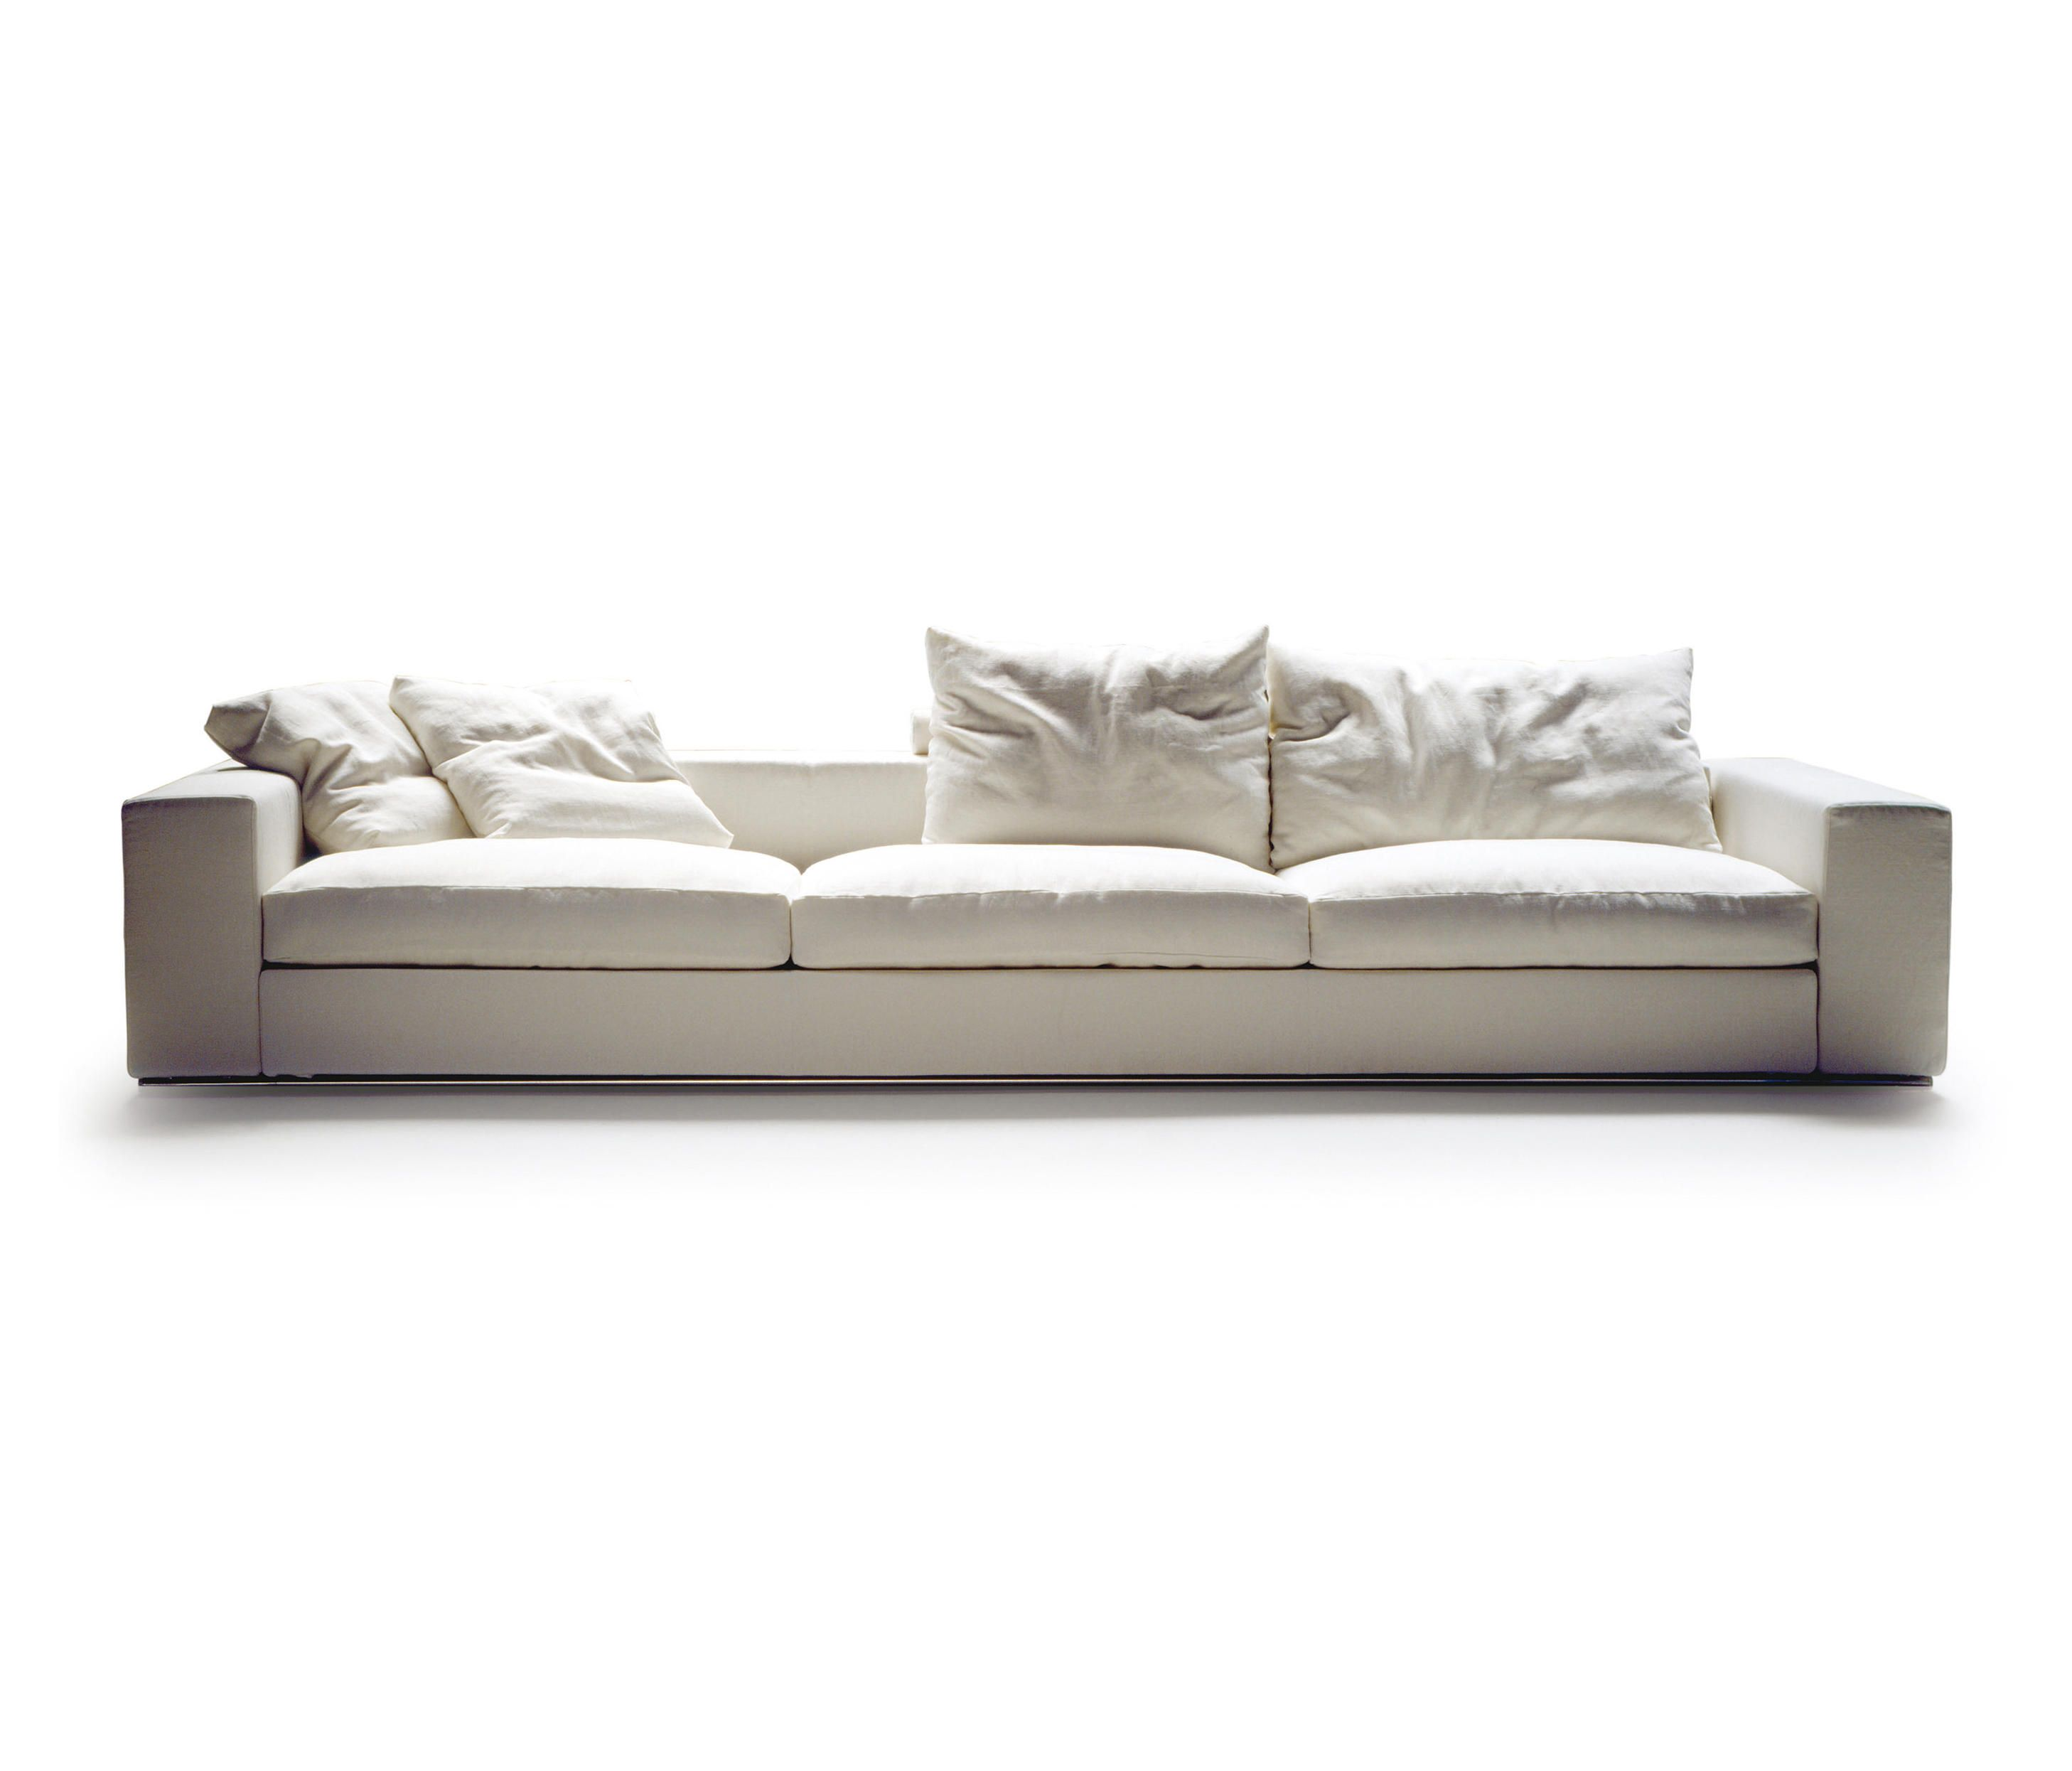 feel good alto sofa - Google Search | ДИВАНЫ | Pinterest